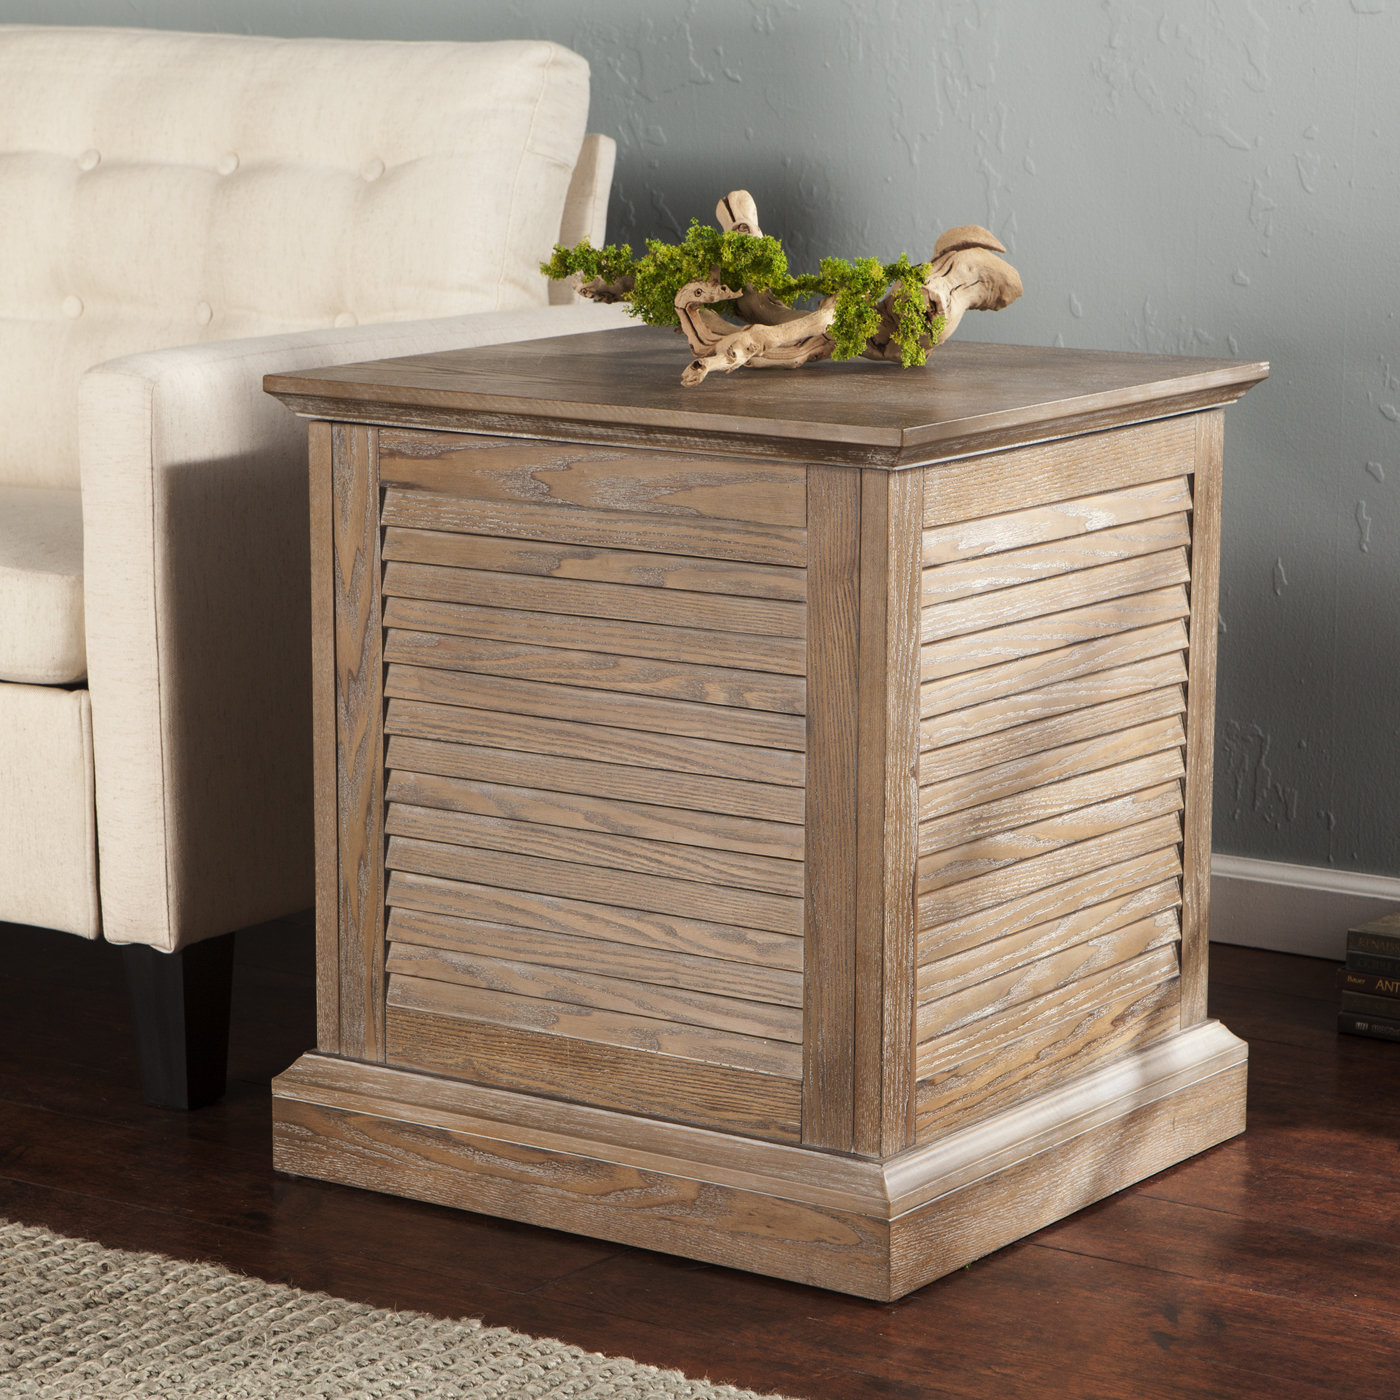 beachcrest home adreanna louvered trunk end table reviews proximity small console desk ethan allen furniture antique stackable tables standing lamp with decorating ideas for